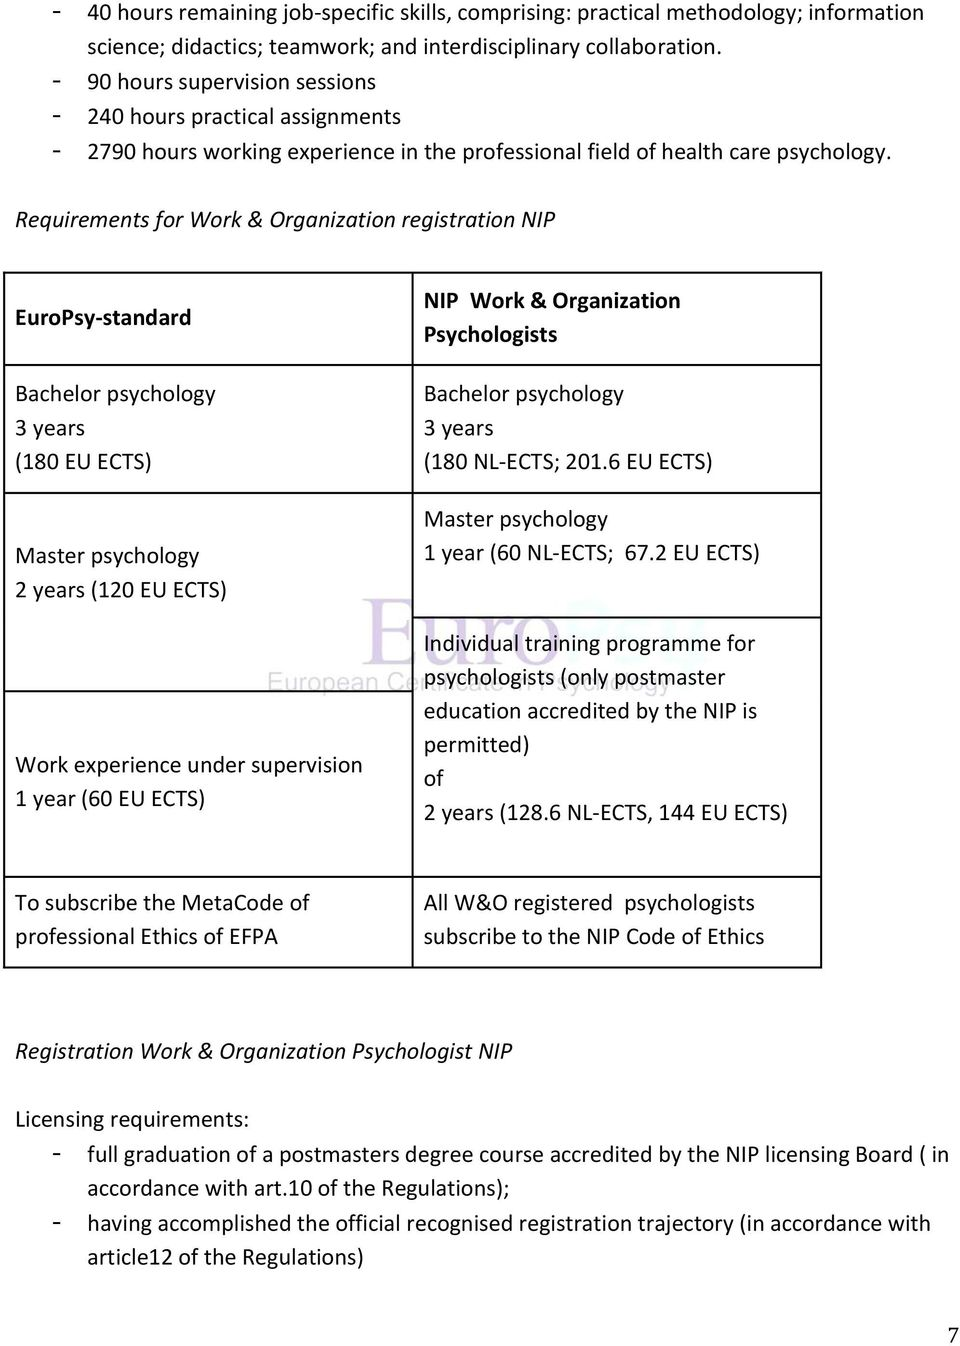 Requirements for Work & Organization registration NIP EuroPsy-standard Bachelor psychology 3 years (180 EU ECTS) Master psychology 2 years (120 EU ECTS) Work experience under supervision 1 year (60